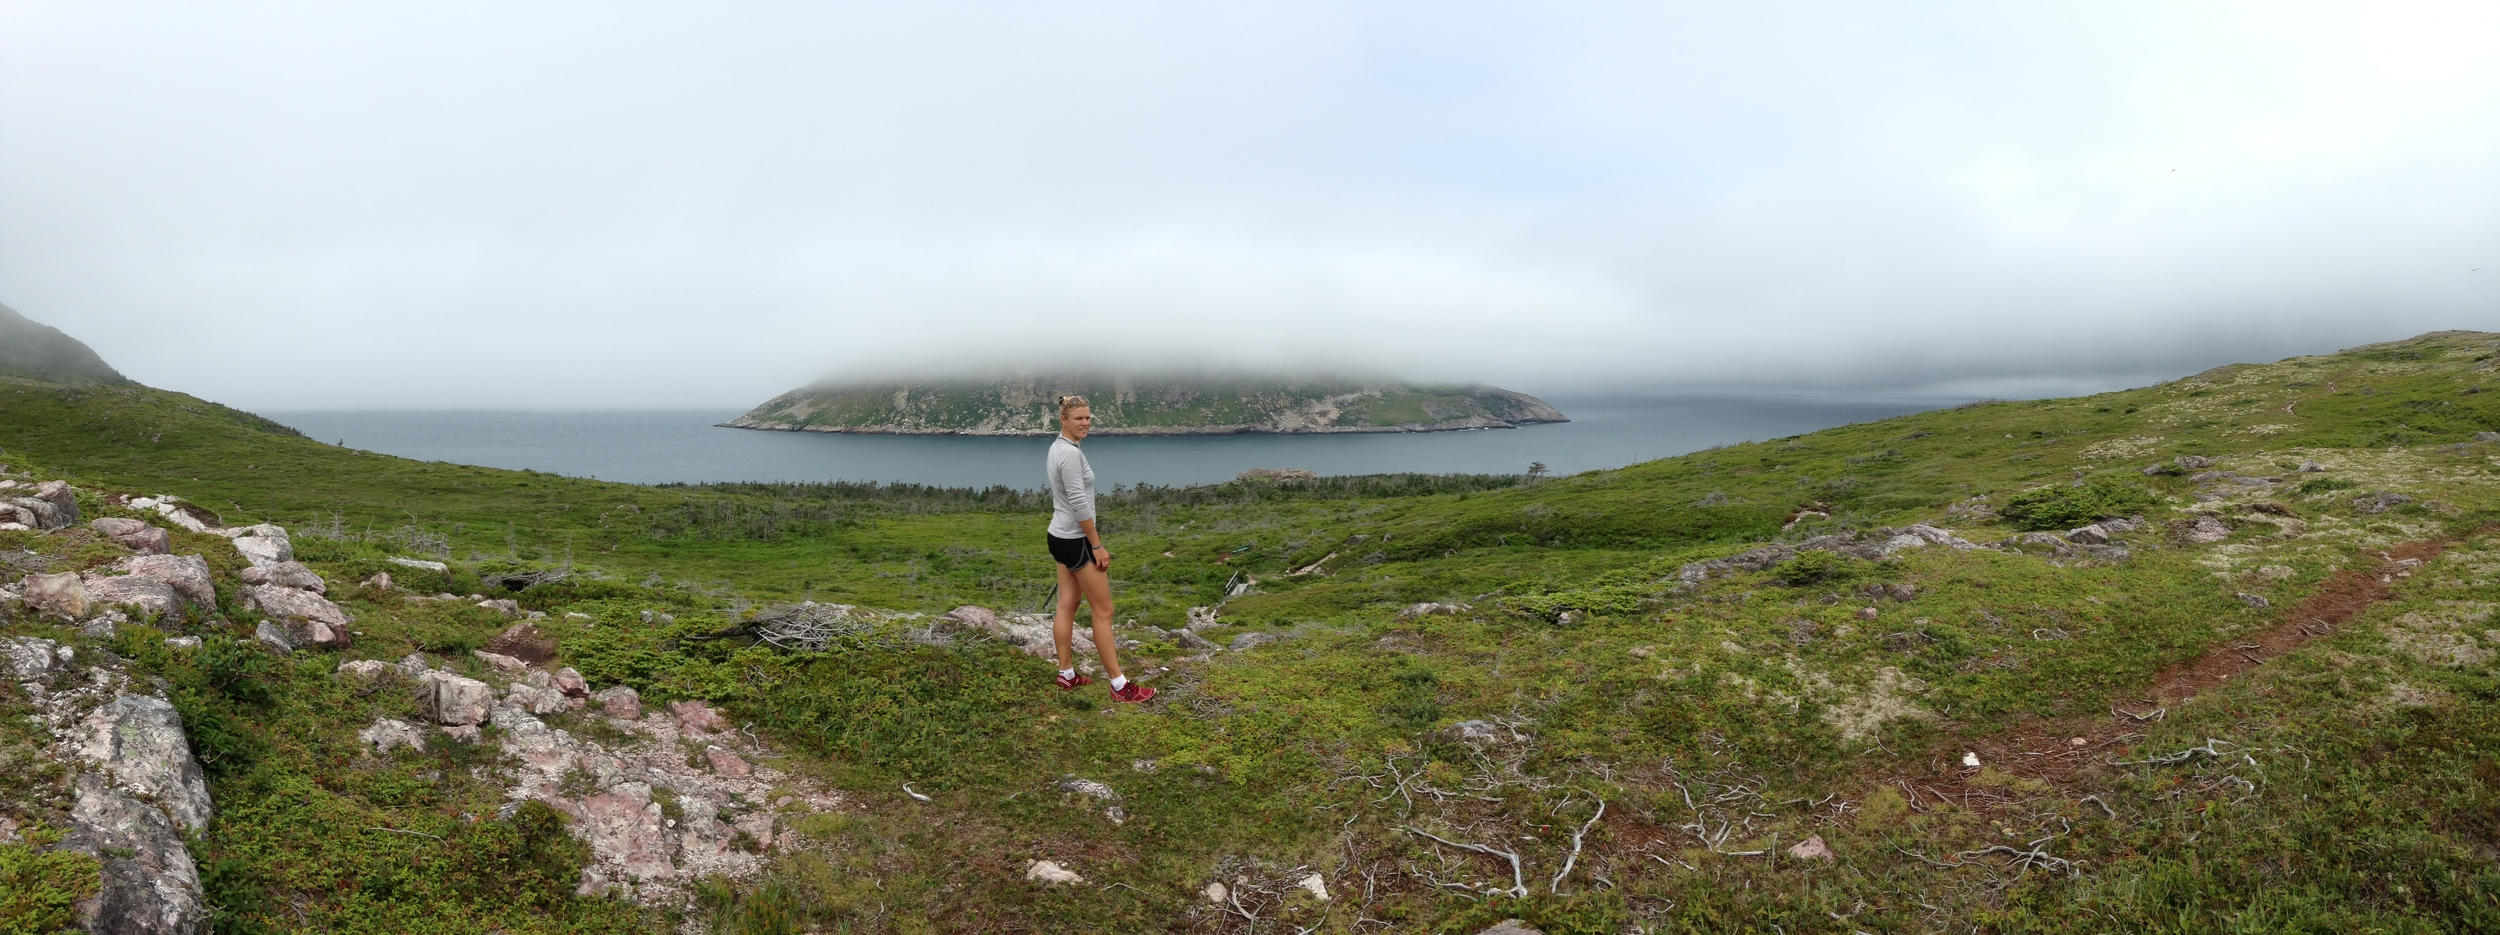 Panoramic view during our hike yesterday. This is facing northwest from St. Pierre - we passed through the channel between islands on  Arcturus in 2011 en route into St. Pierre for the first time.